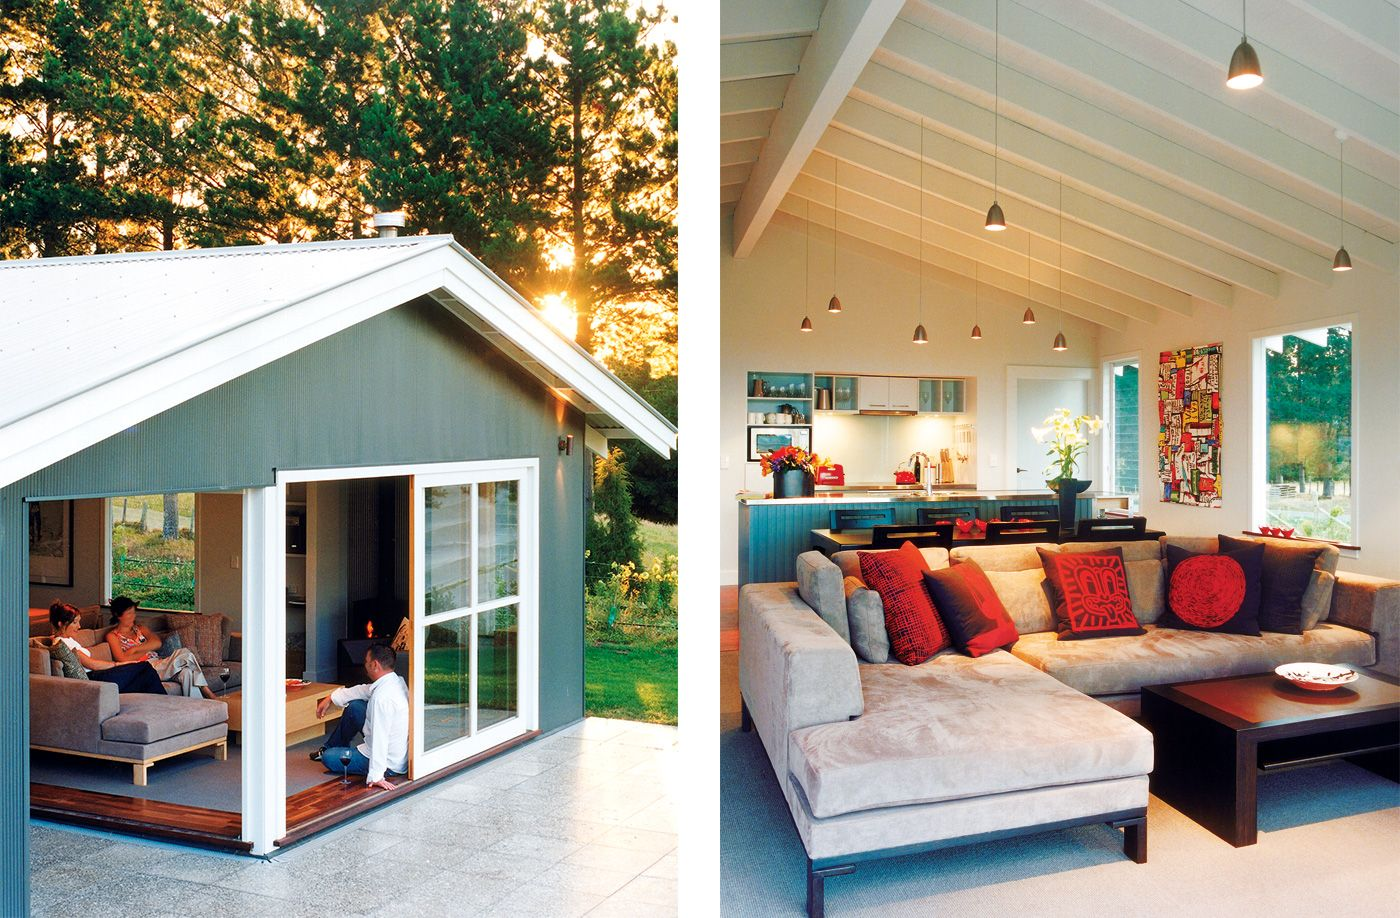 Holiday homes to temporarily call your own interiors pinterest